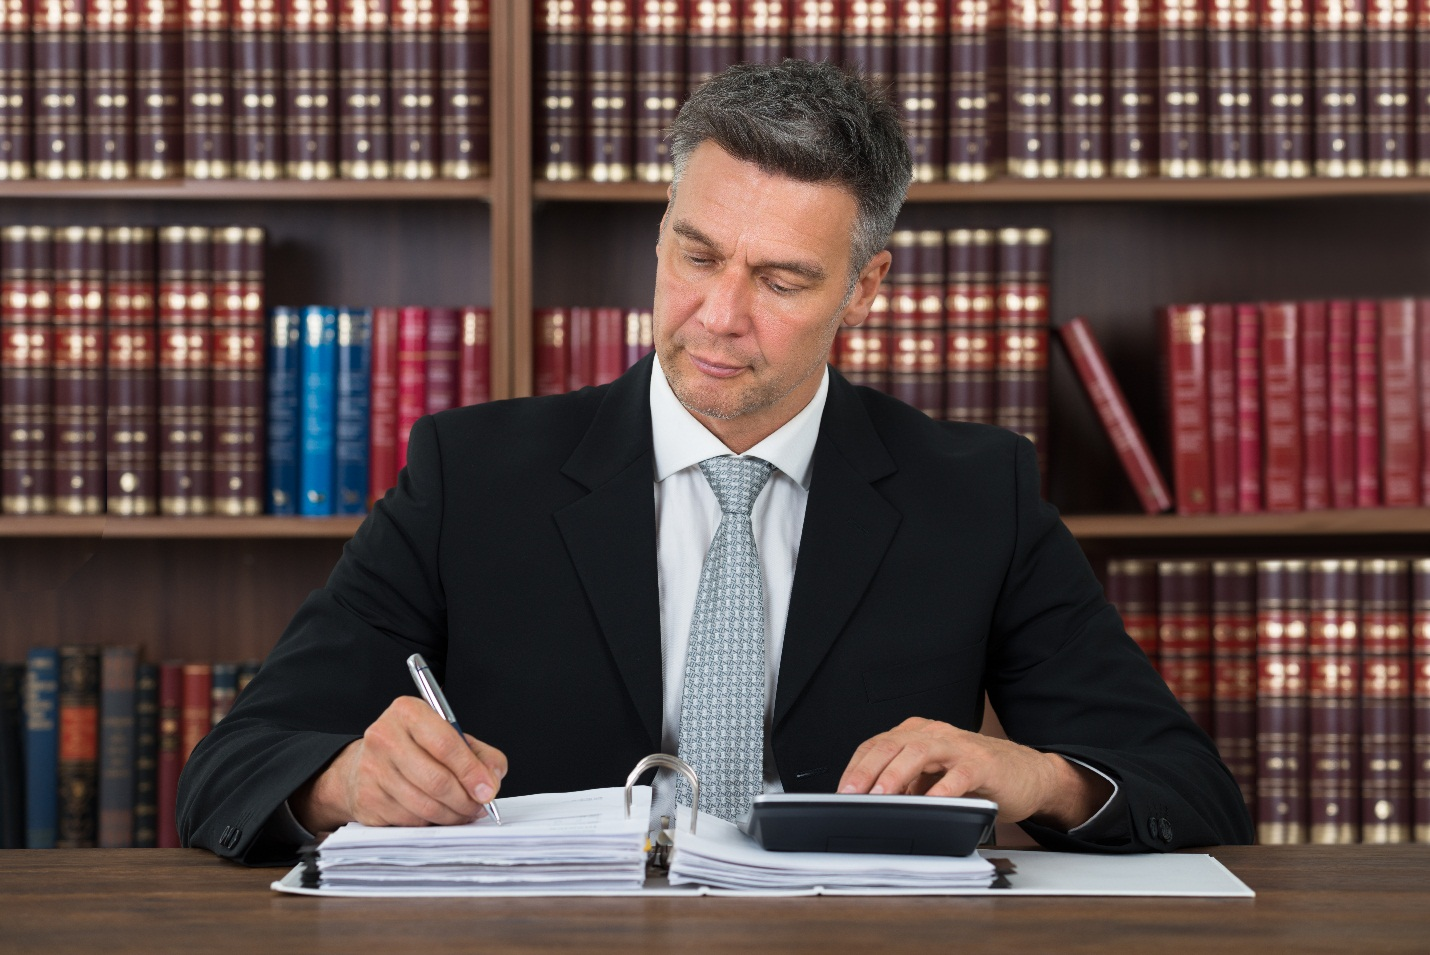 man in library writing on notebook